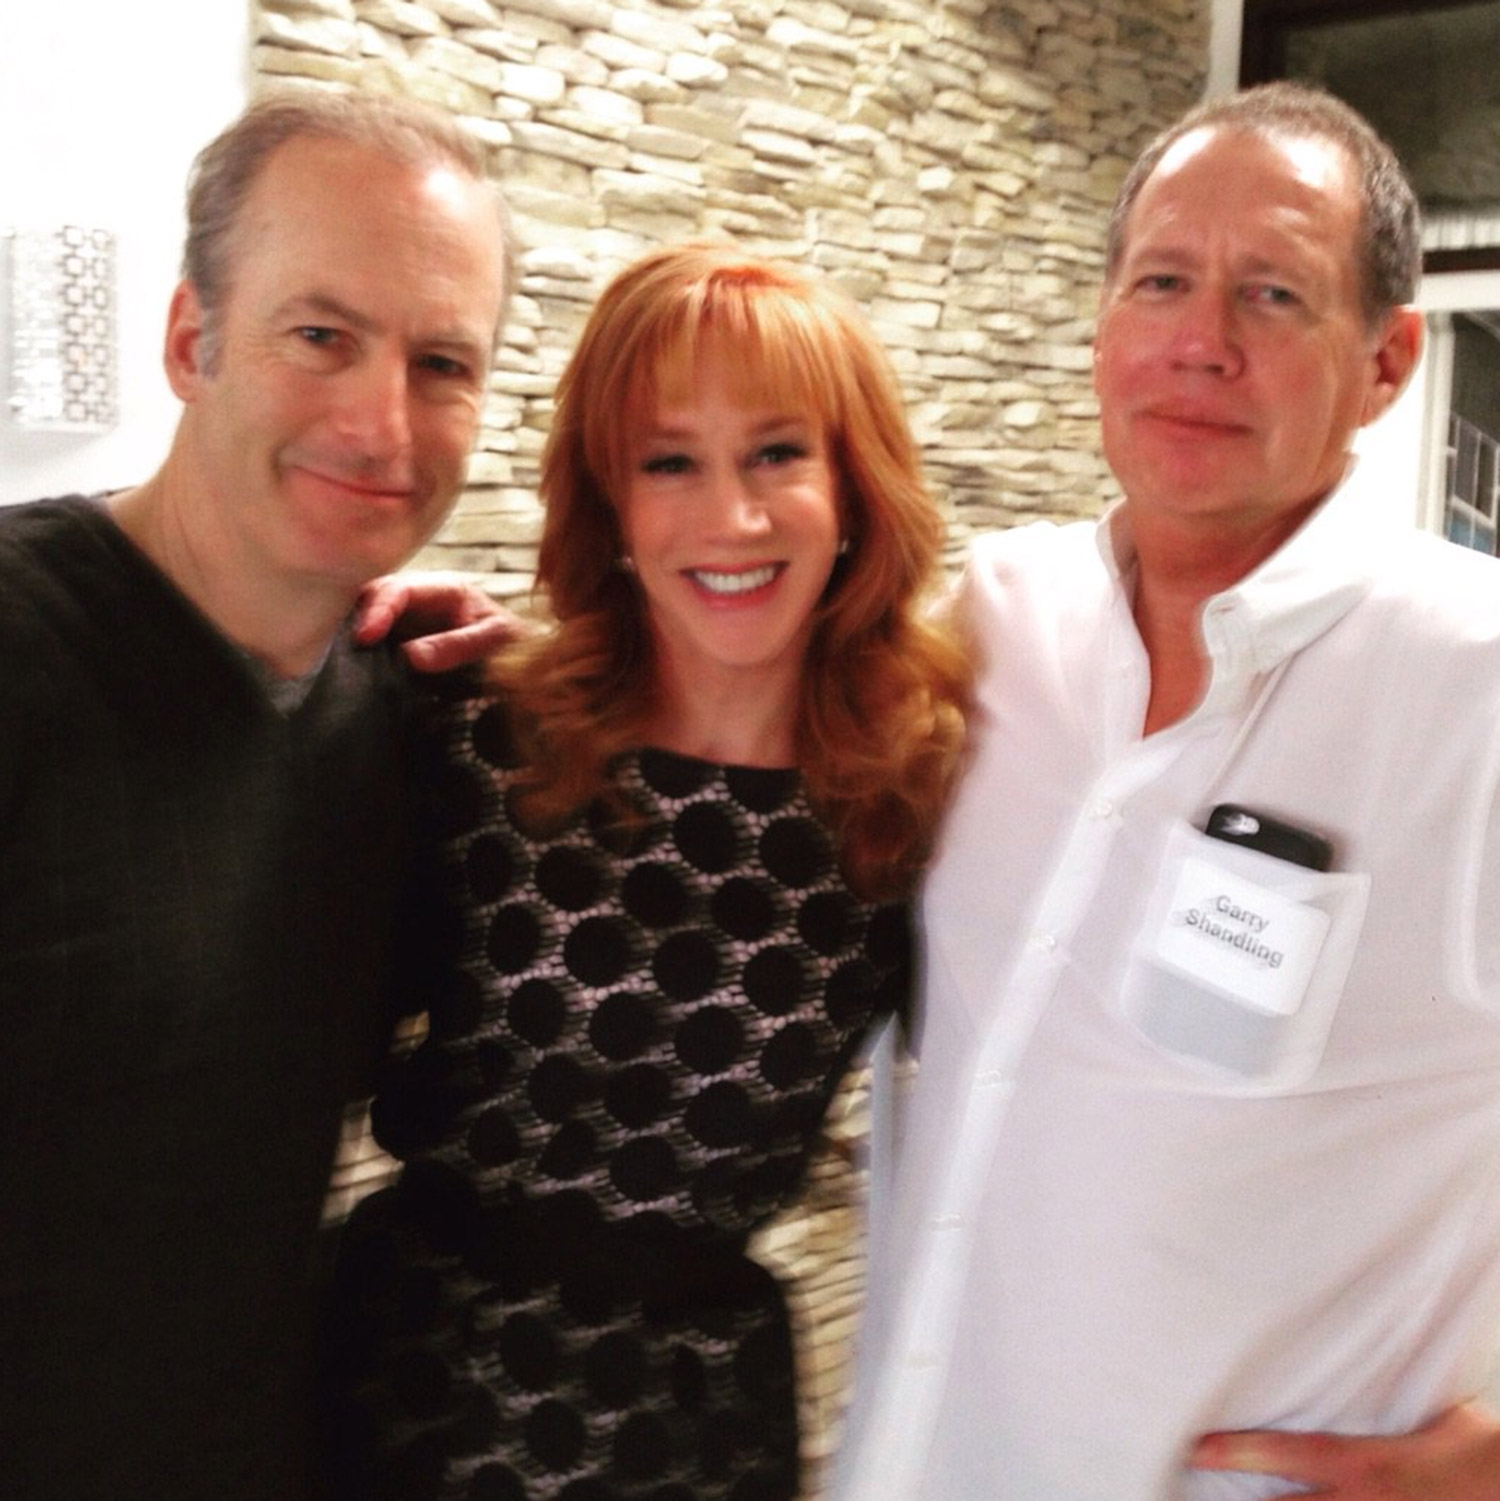 Kathy Griffin and Garry Shandling